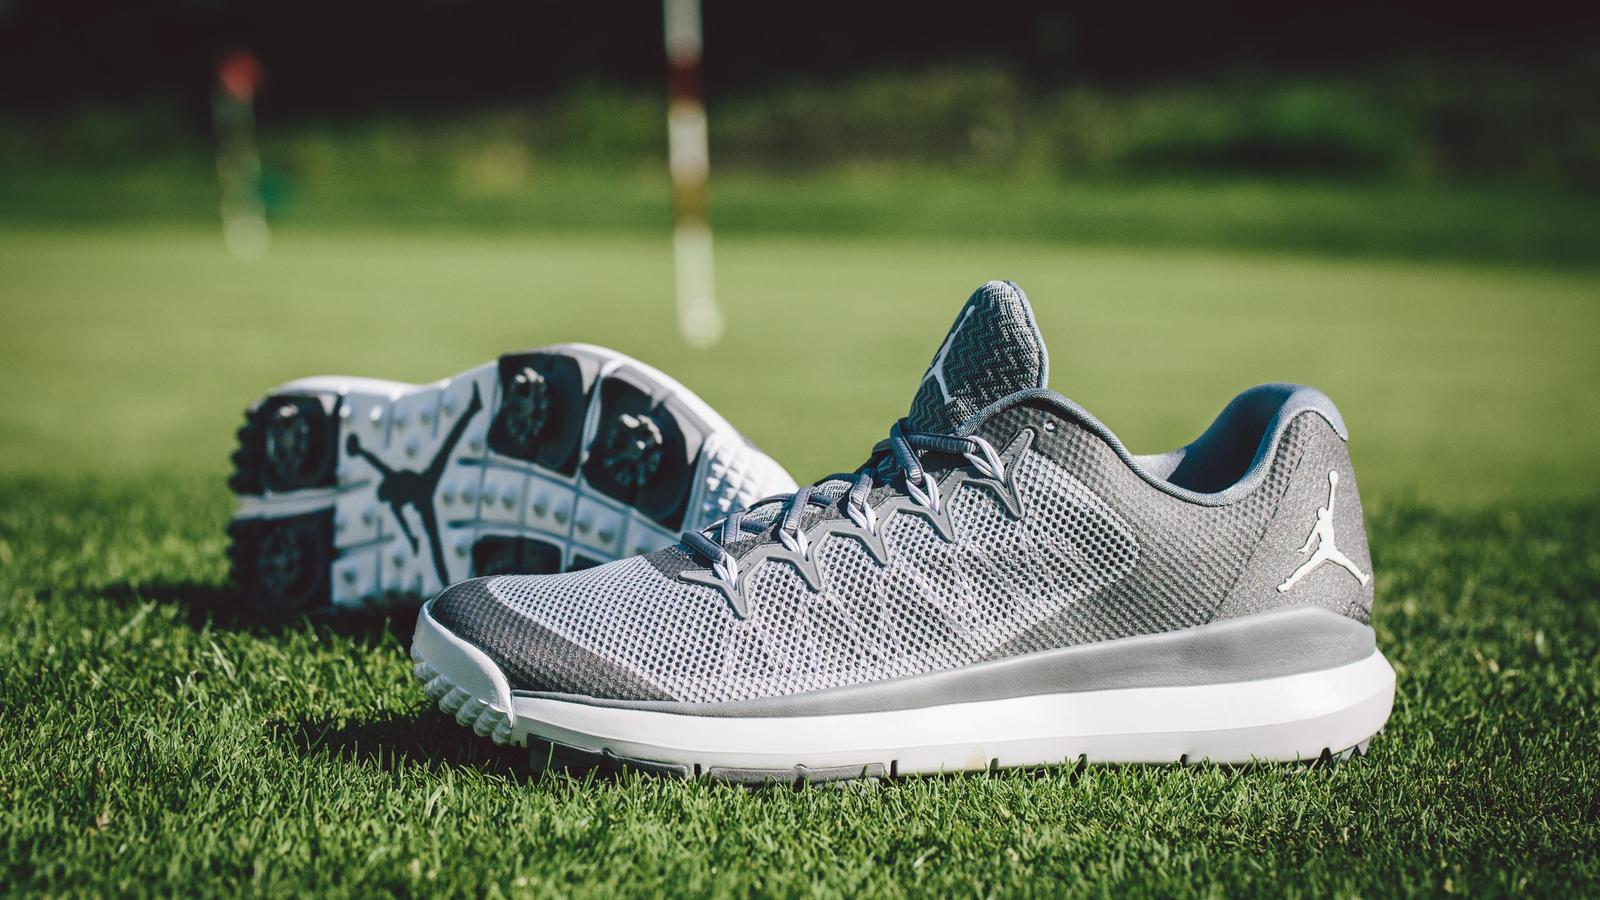 Jordan Brand Steps Onto The Green With Jordan Flight Runner Golf ... 504dda95a